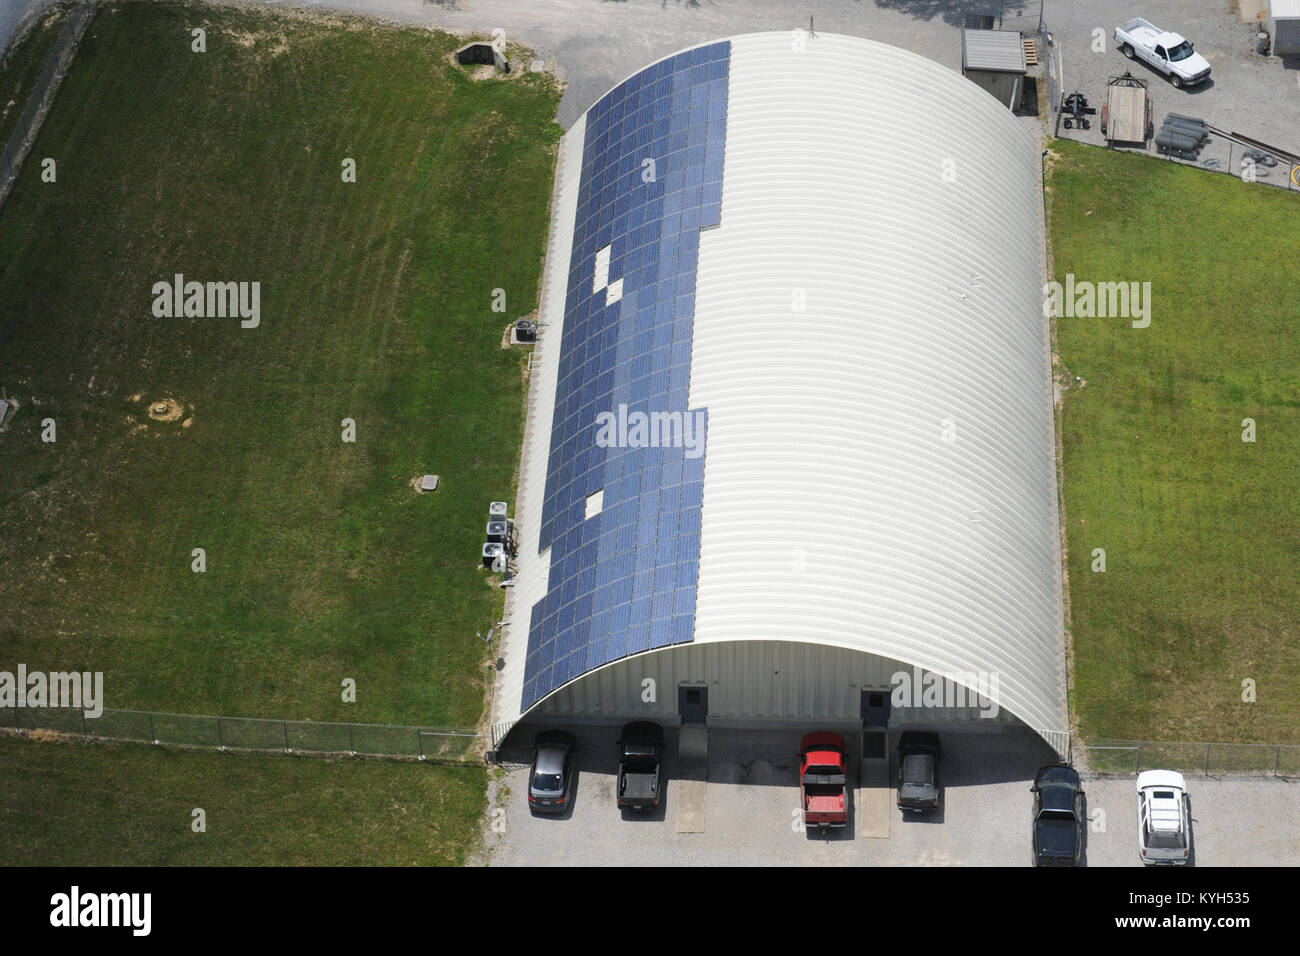 Aerial view of solar panels installed on the buildings of